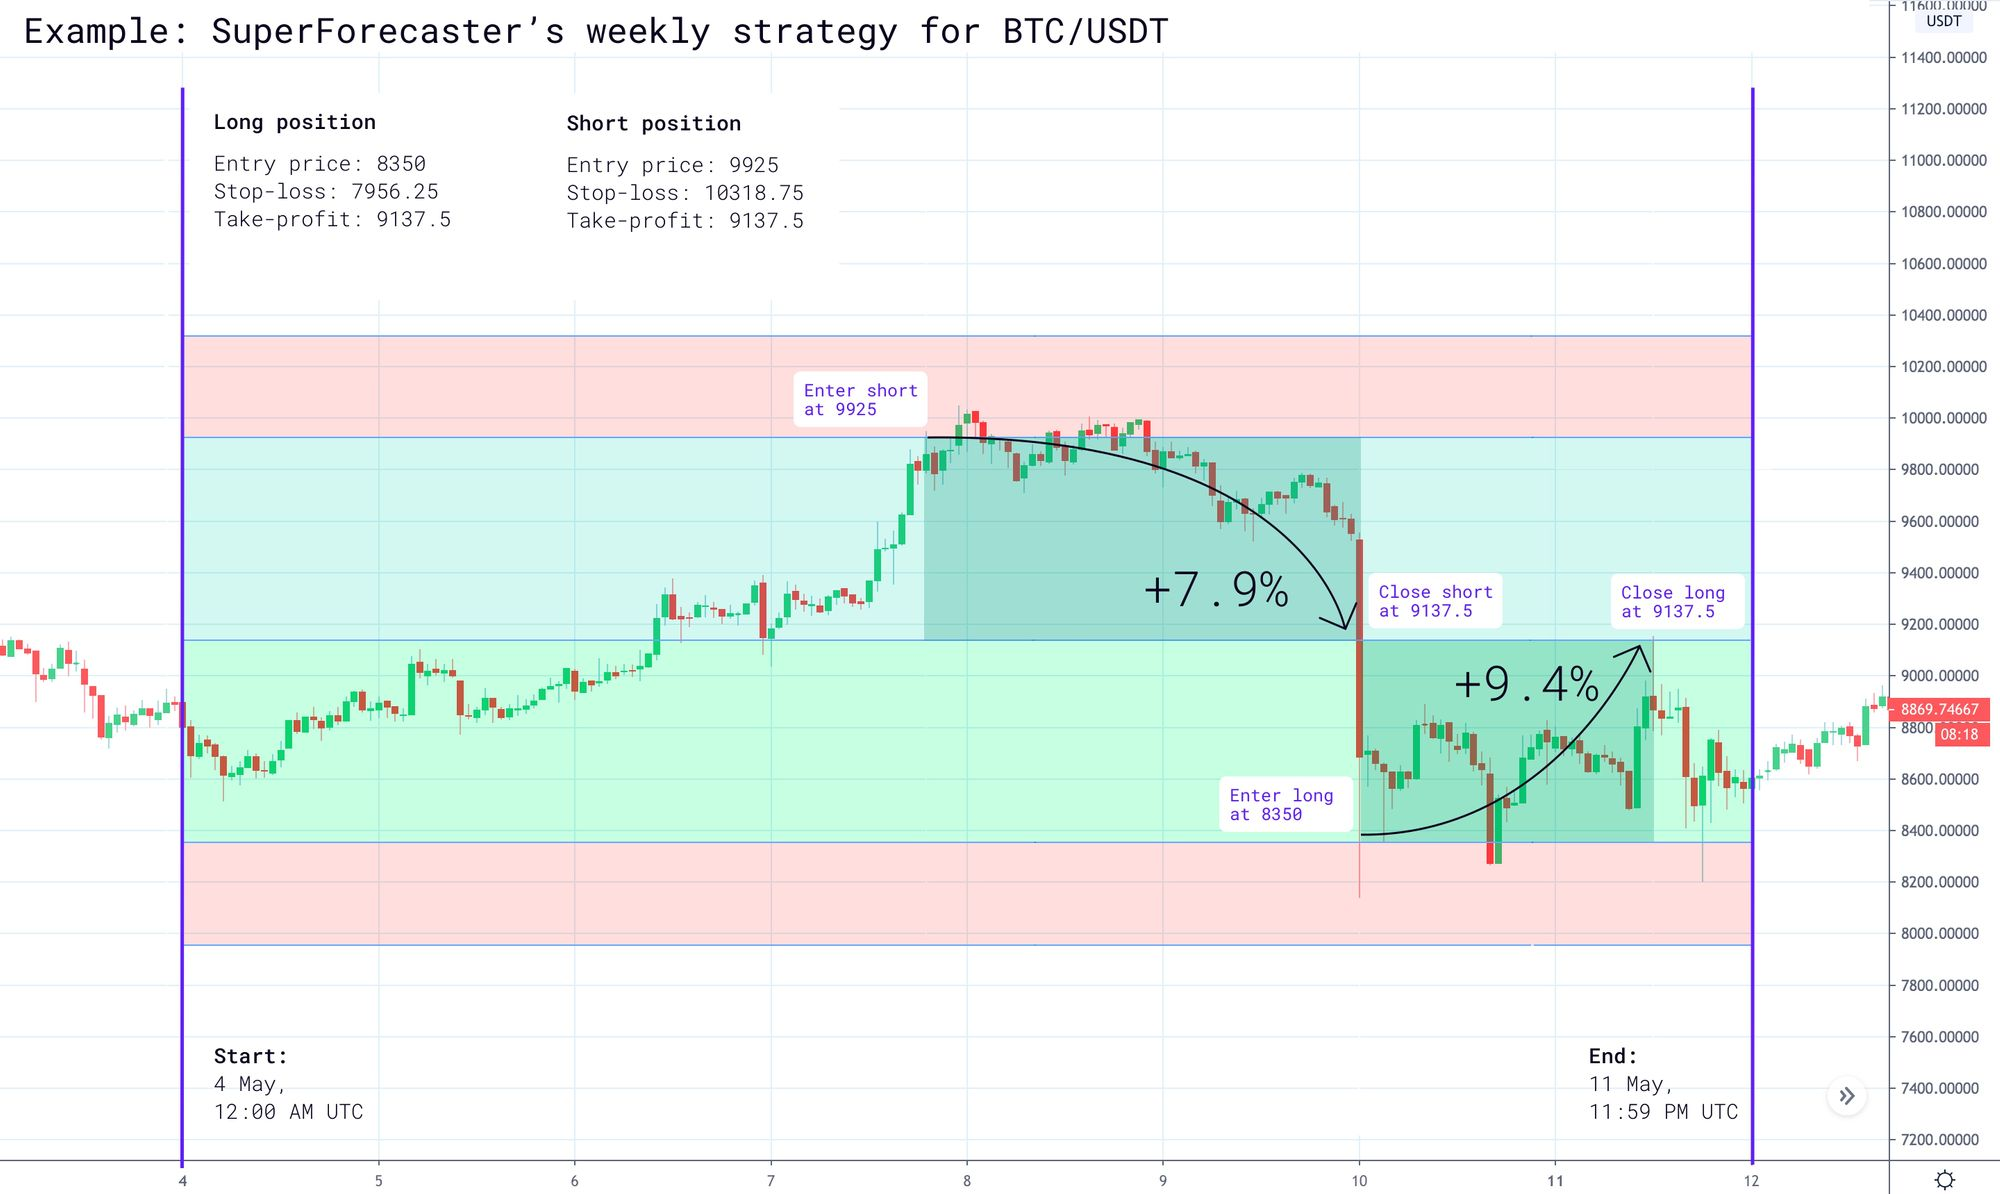 Example: Superforecaster's weekly strategy for BTCUSDT